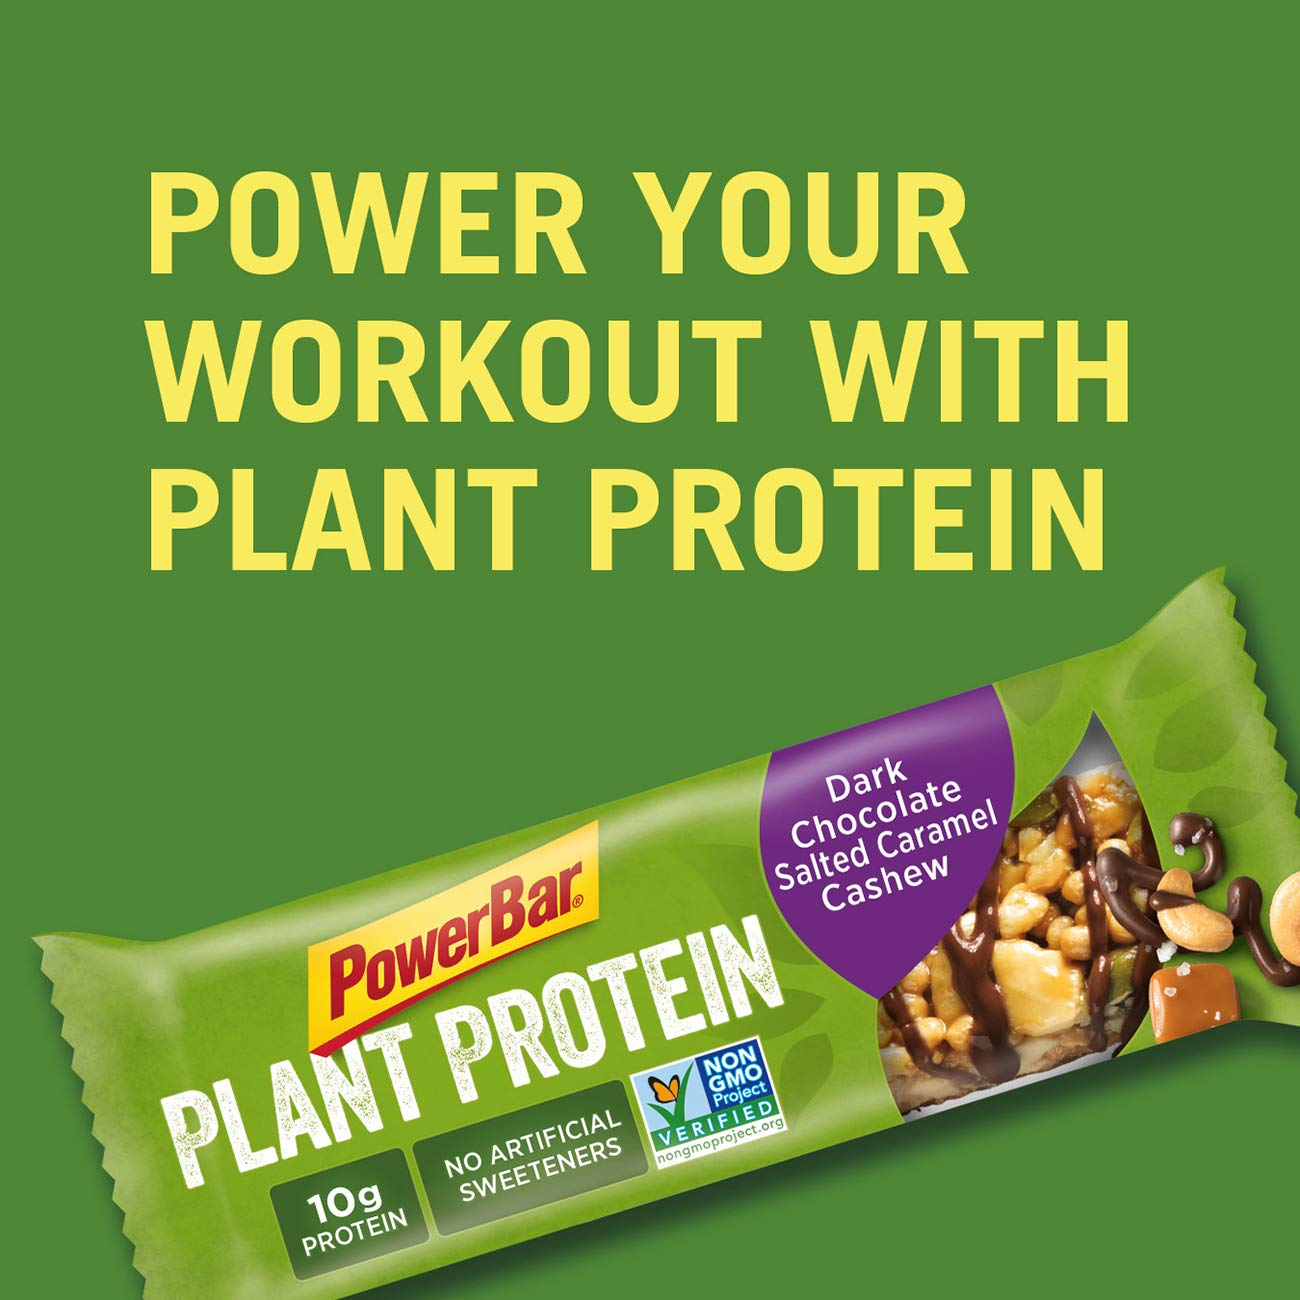 PowerBar Plant Protein Bar, Dark Chocolate Salted Caramel Cashew, 15 Count, Pack of 1 by Powerbar (Image #5)